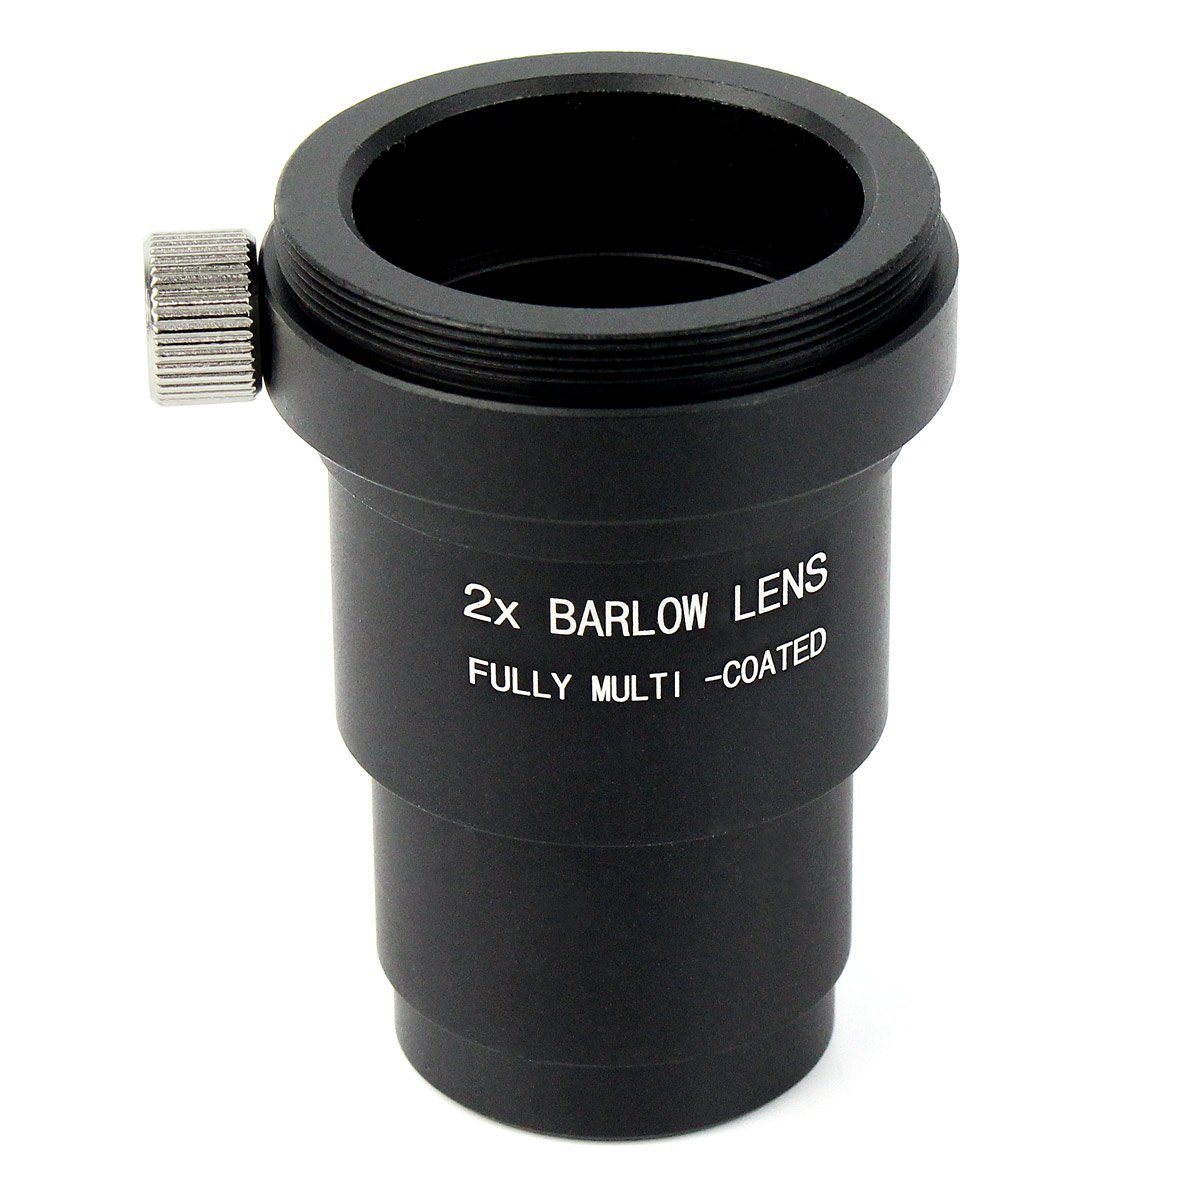 Solomark Barlow Lens 2x 1.25 Inch Multi-Coated Metal with M42x0.75 Thread Camera Connect Interface for Telescope by SOLOMARK